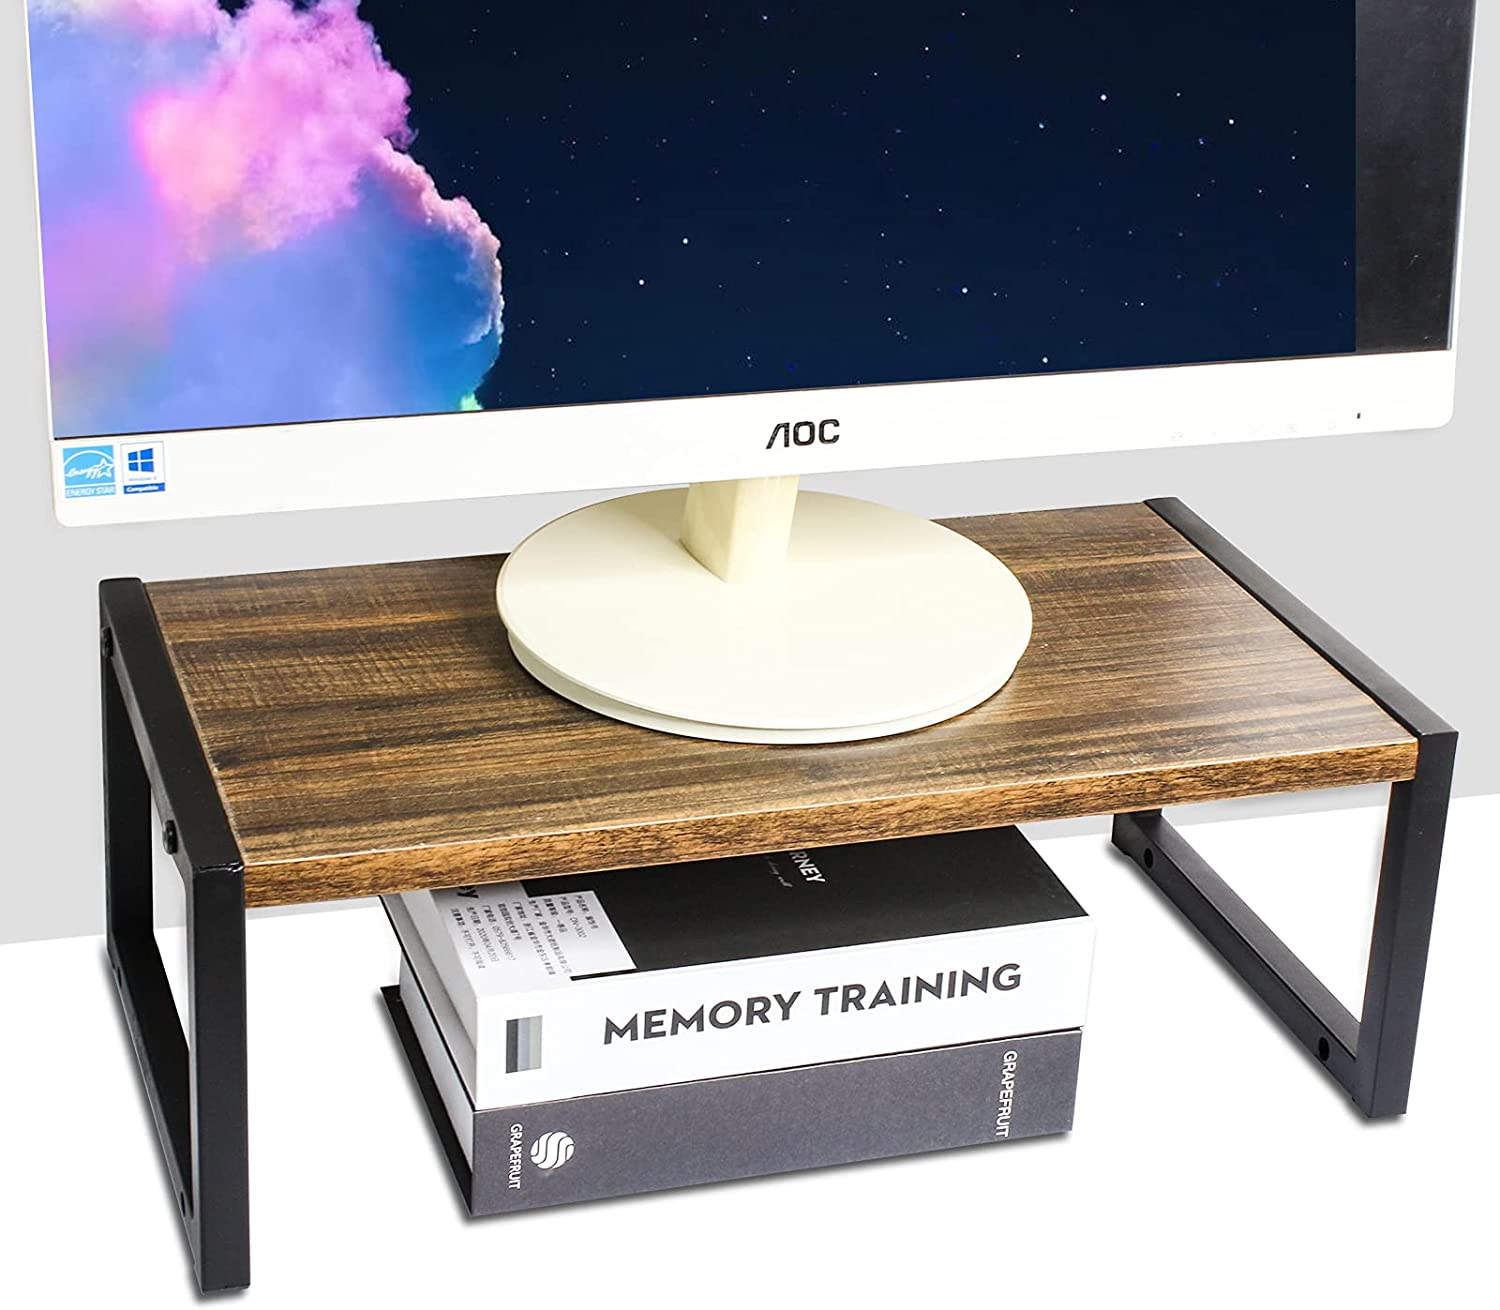 Monitor Stand Riser,2 Tier Computer Monitor Desktop Organizer Stand,PC Holder Computer Stand Desk Organizer, Desktop Stand for Printer & Flat Screen Display